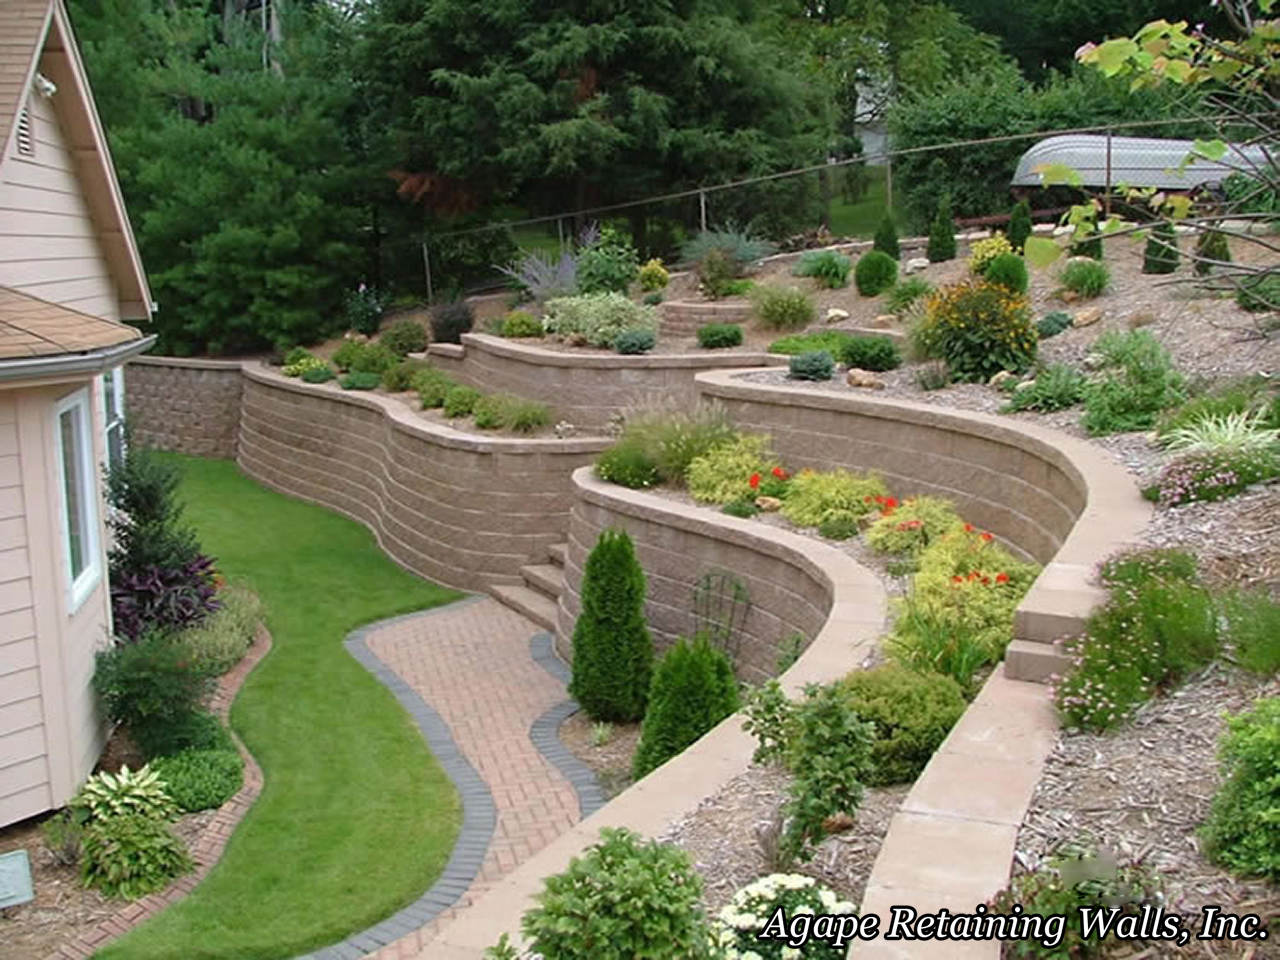 Landscaping Ideas For Backyard With Retaining Wall : Backyard Landscaping Ideas Retaining Walls Backyard Landscaping Ideas